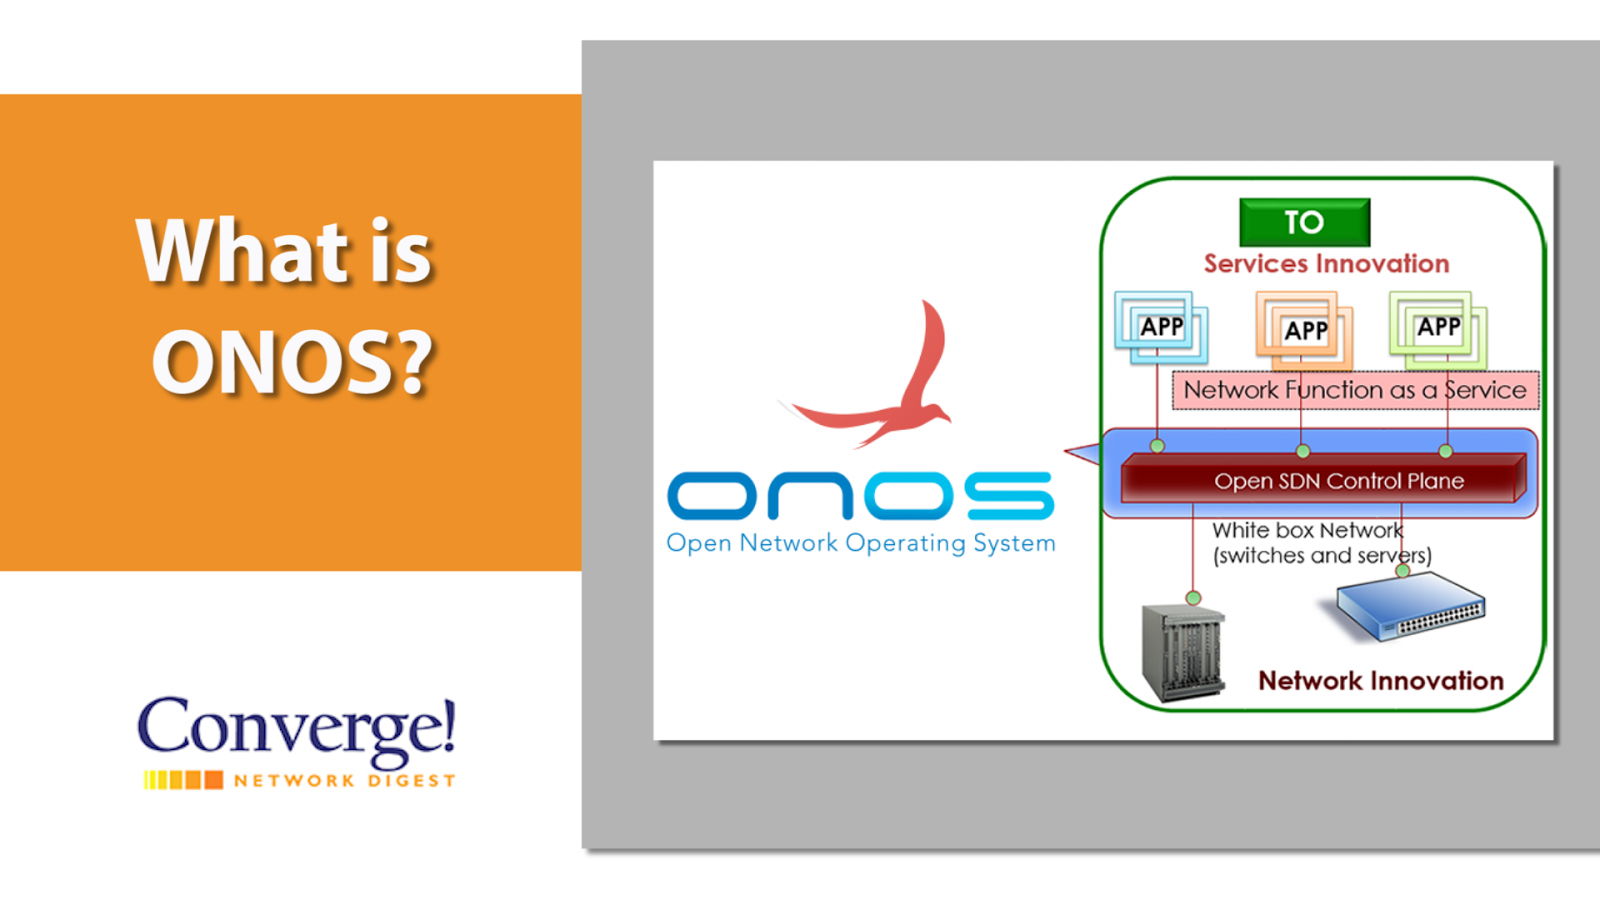 Converge! Network Digest: Search results for ONOS